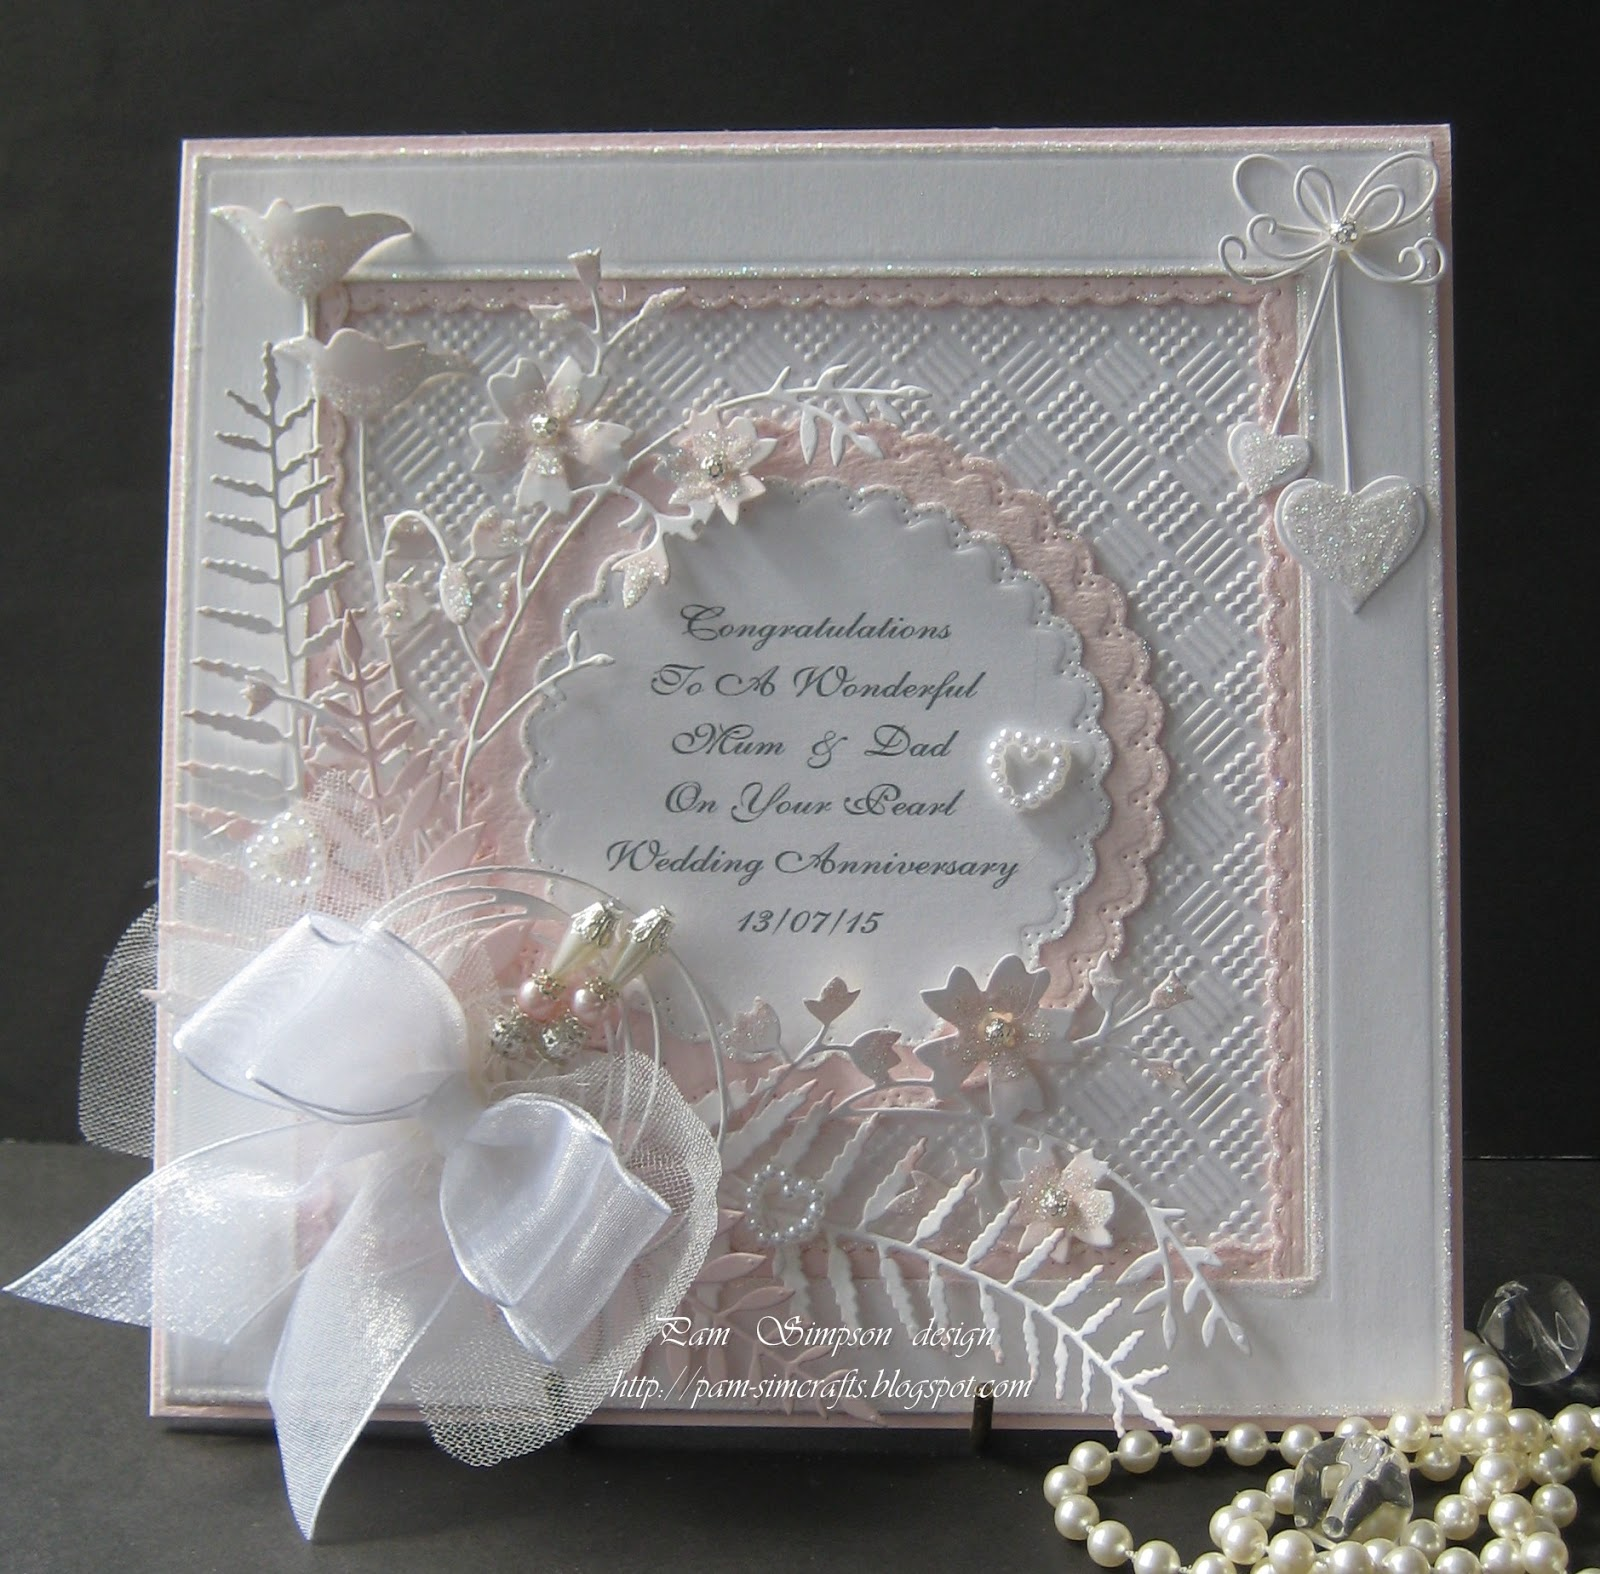 Pearl Wedding Anniversary Gift Ideas Uk : Had to use glamour dust on this special card!.